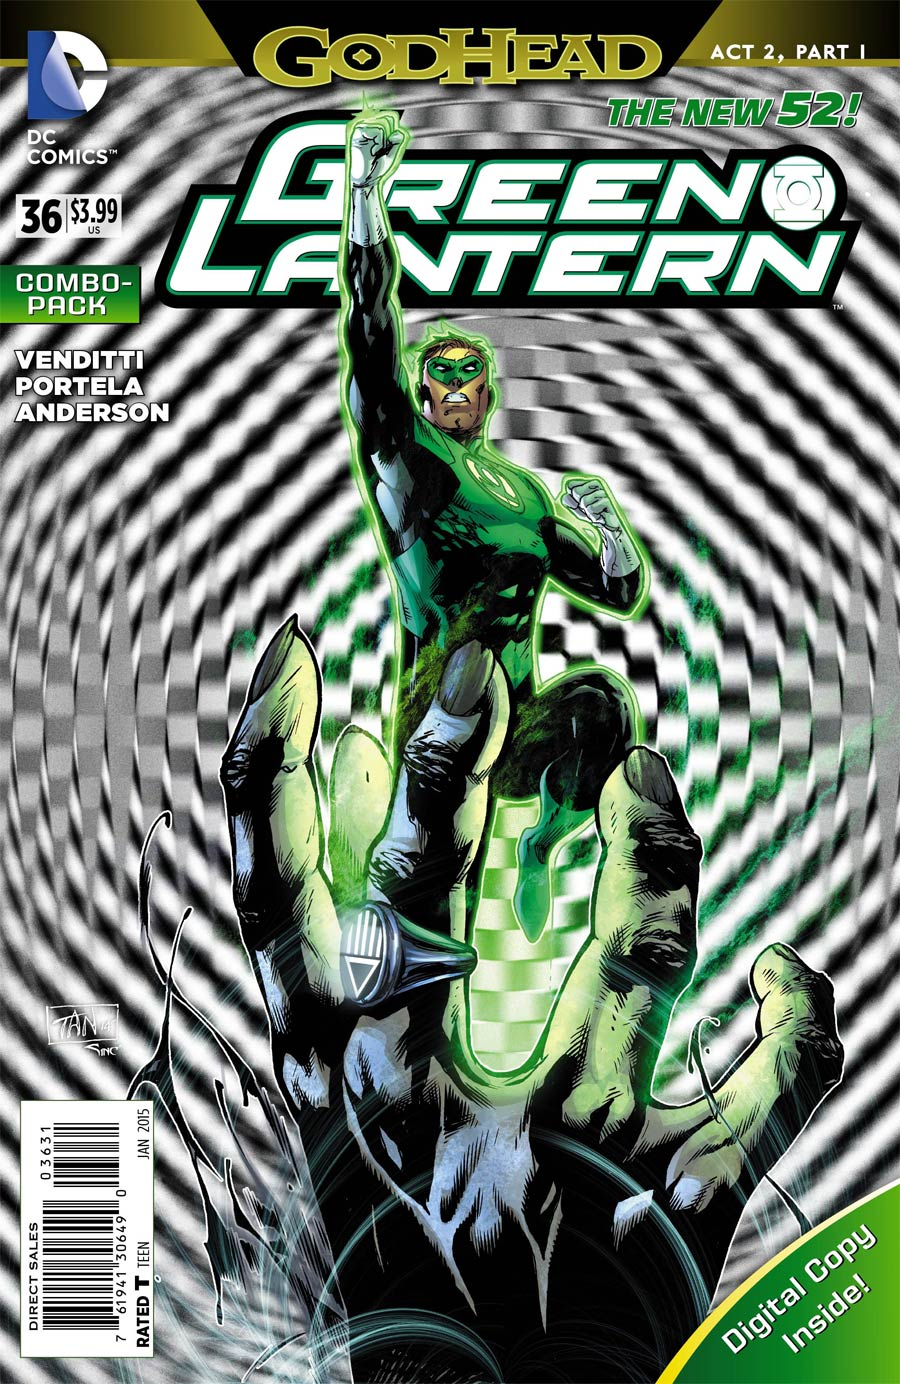 Green Lantern Vol 5 #36 Cover C Combo Pack With Polybag (Godhead Act 2 Part 1)